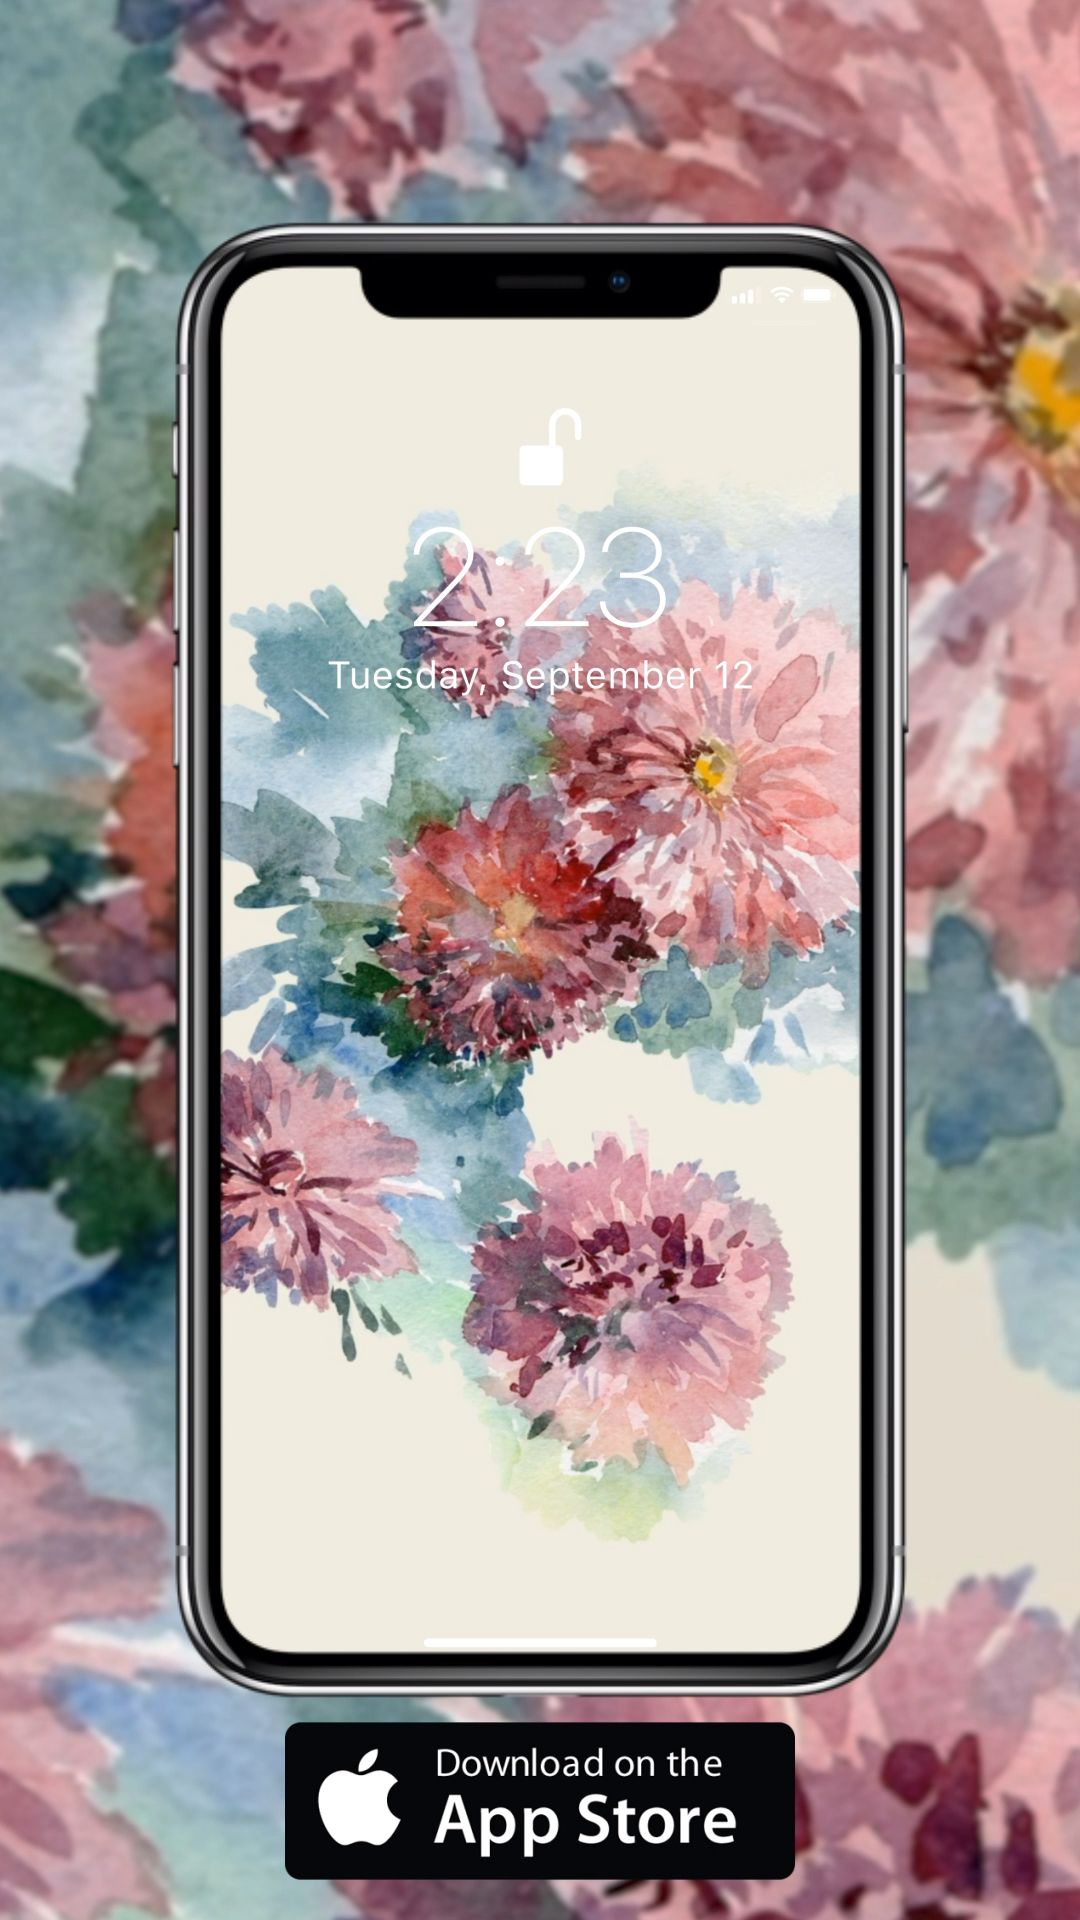 Painting live wallpaper for your iPhone XS from Everpix